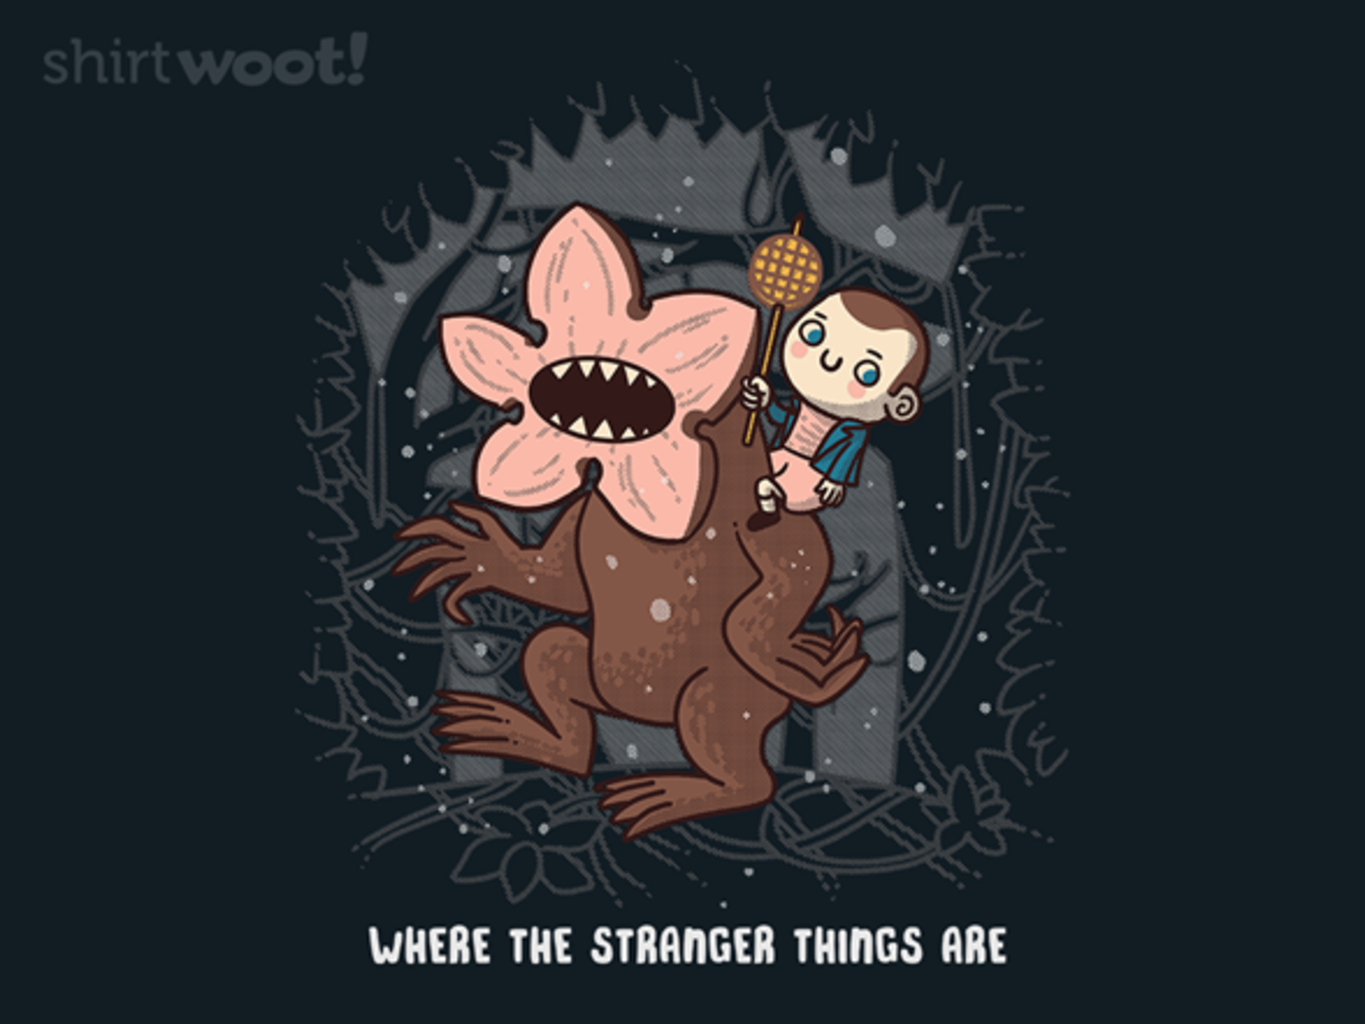 Woot!: Where the Stranger Things Are - $8.00 + $5 standard shipping